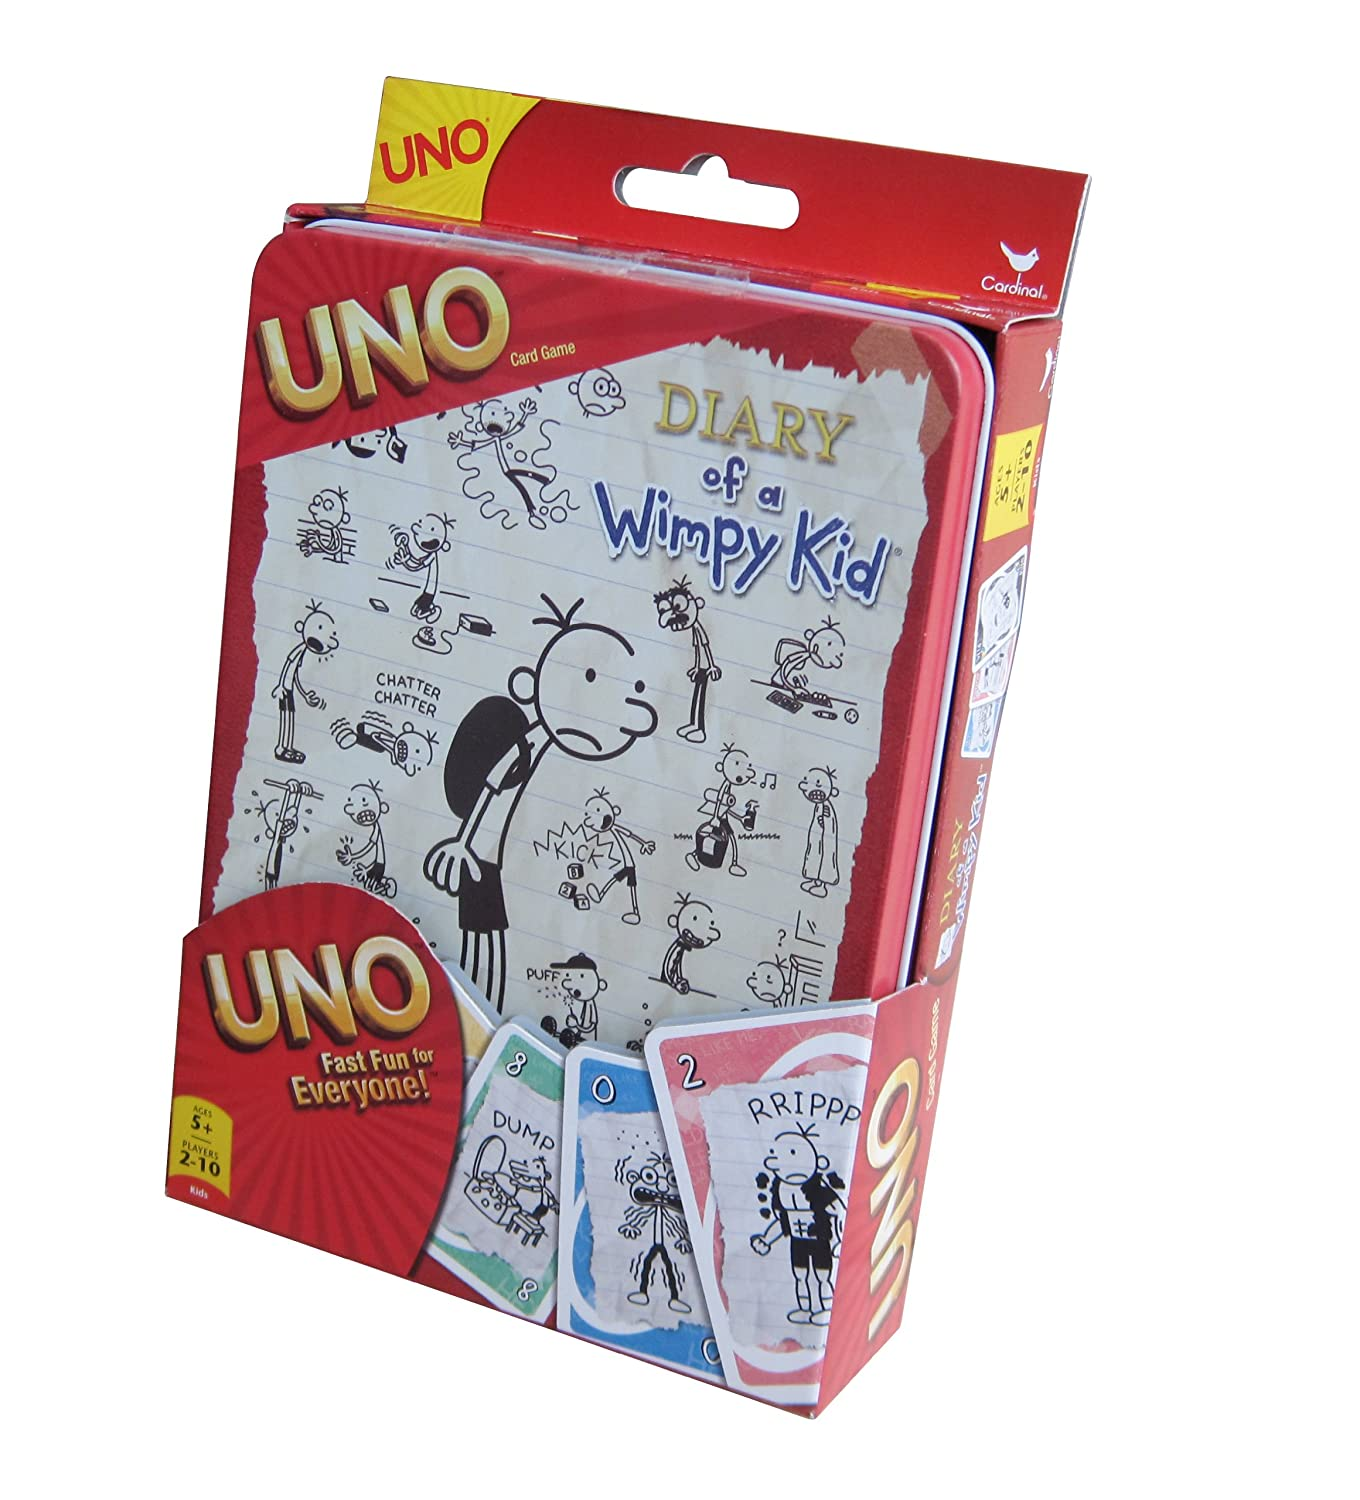 Fundex Diary of a Wimpy Kid UNO